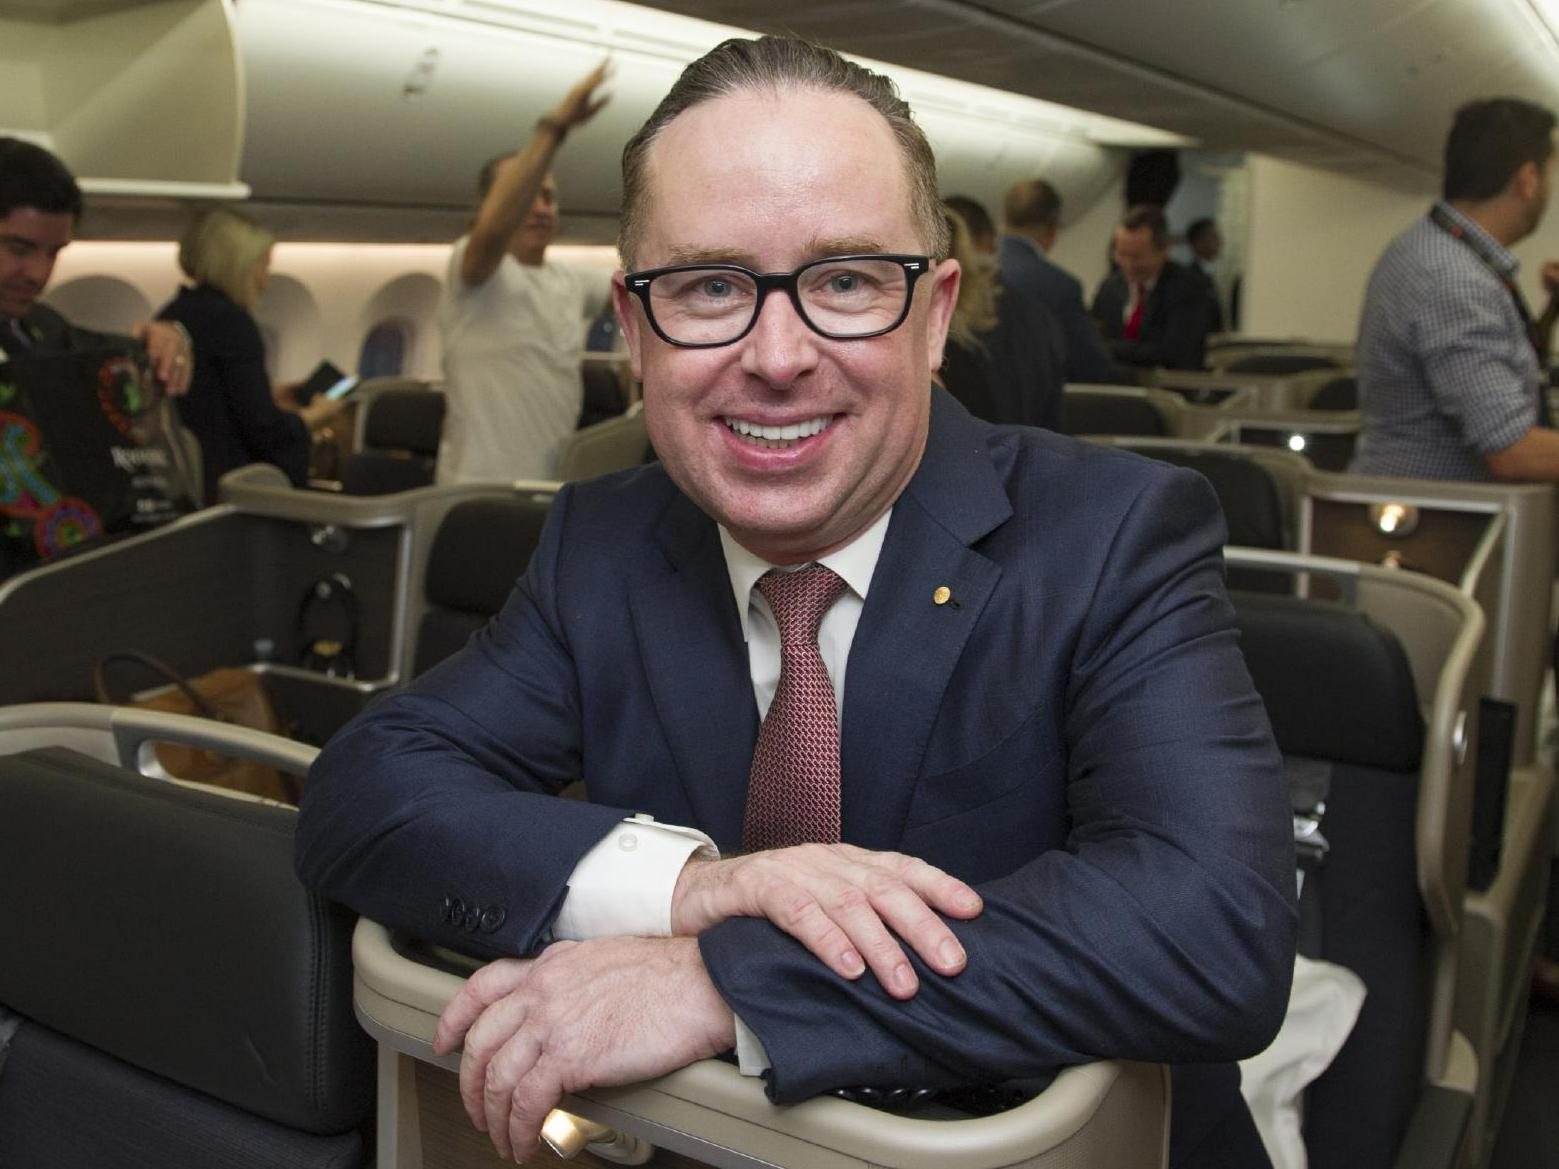 Qantas boss Alan Joyce on the first flight. Credit: Sunday Times